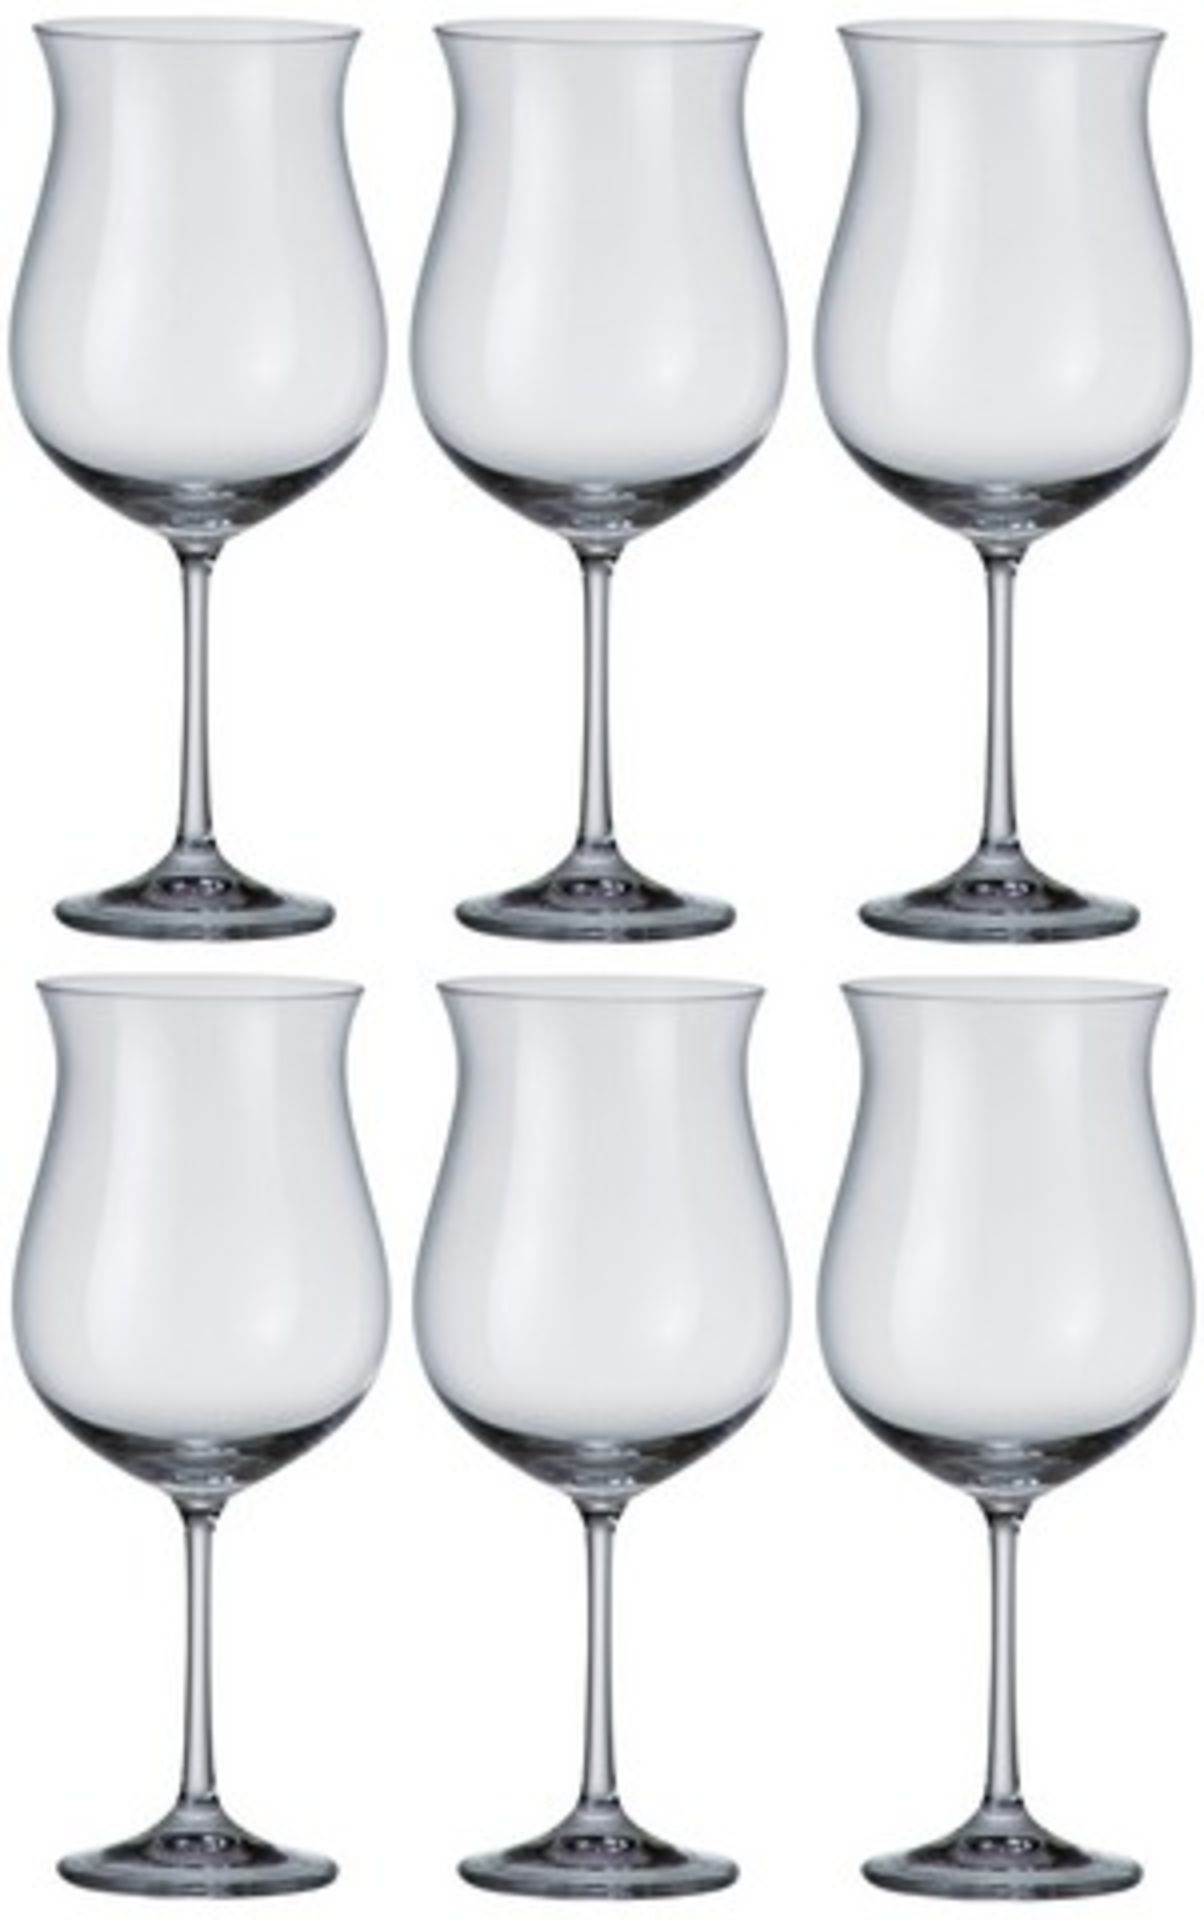 Lot 50077 - V Brand New Pack of Six 640ml Red Wine Glasses - Large Sized Bowl - Dishwasher Safe - Durable